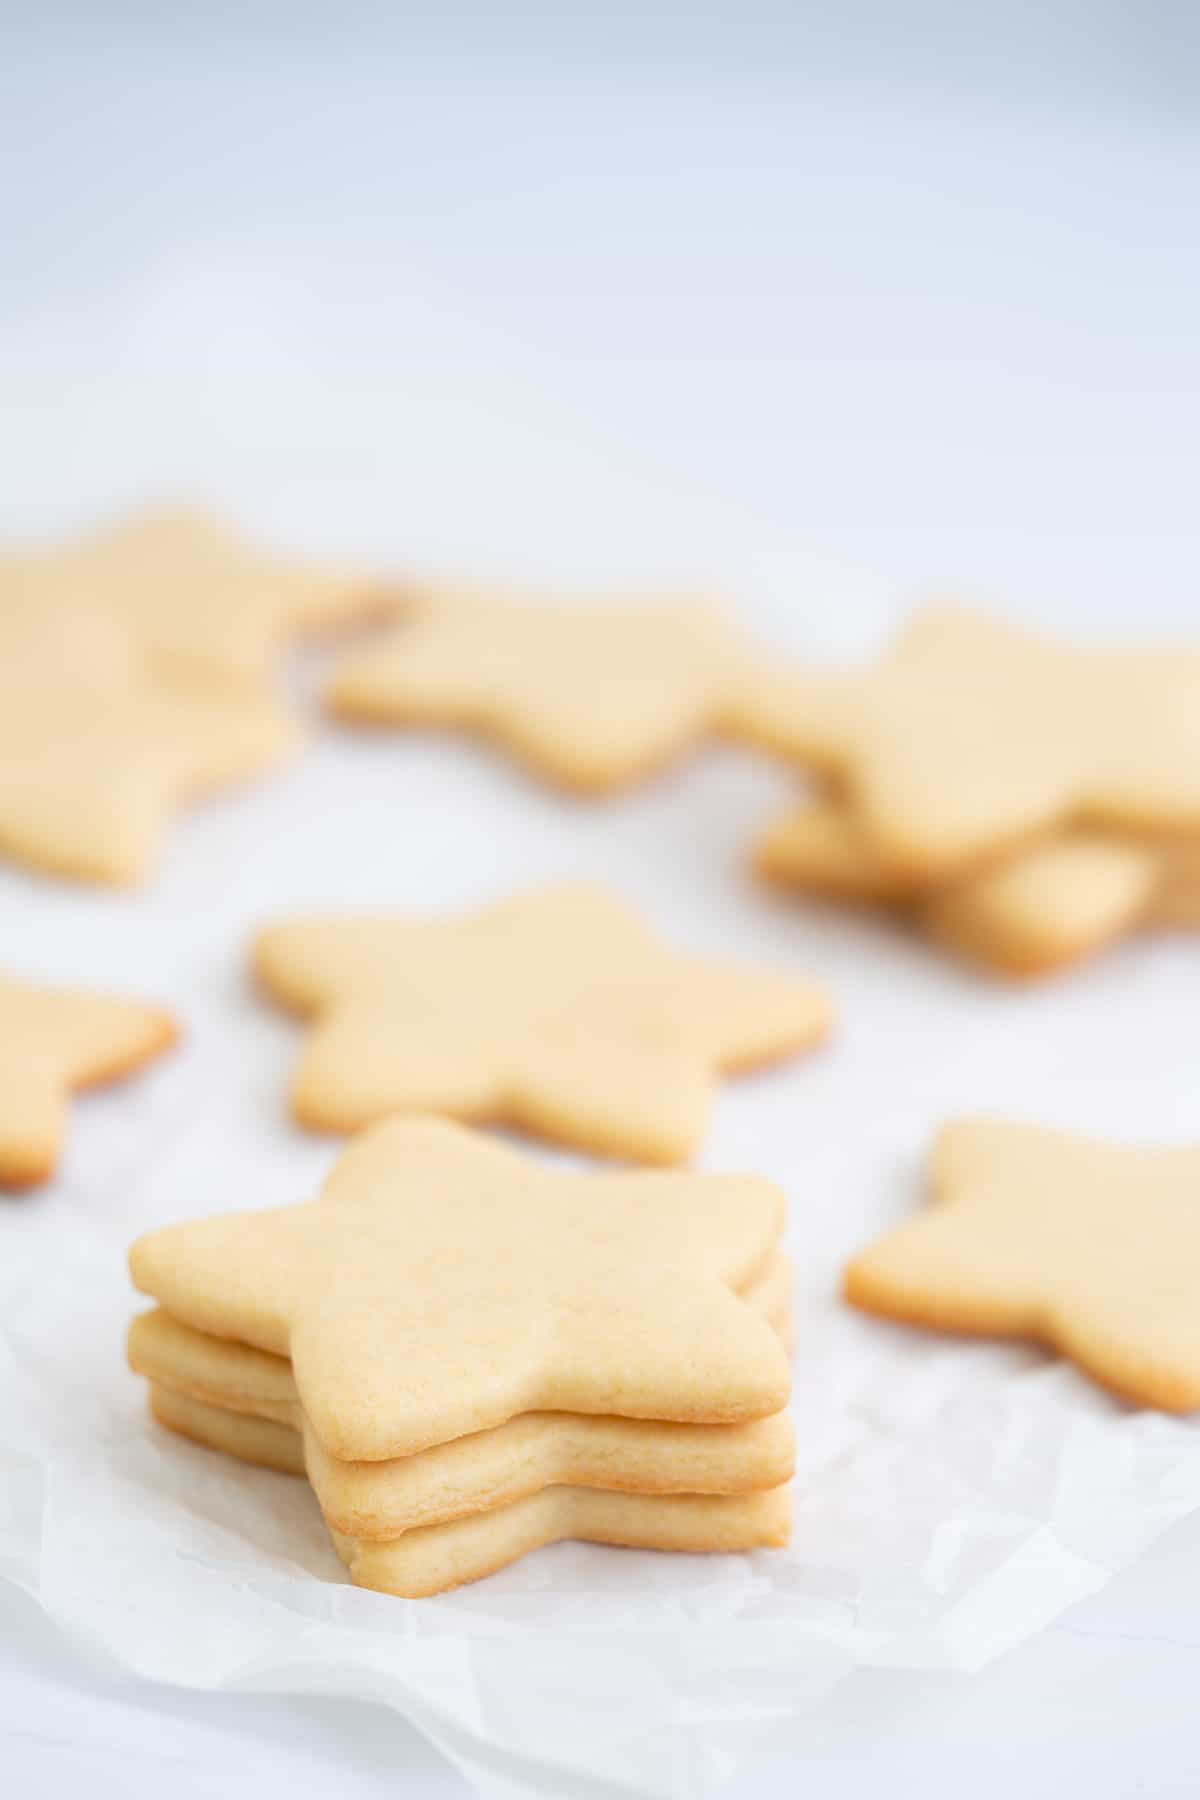 A stack of three star shaped sugar cookies on a piece of crumpled baking powder.